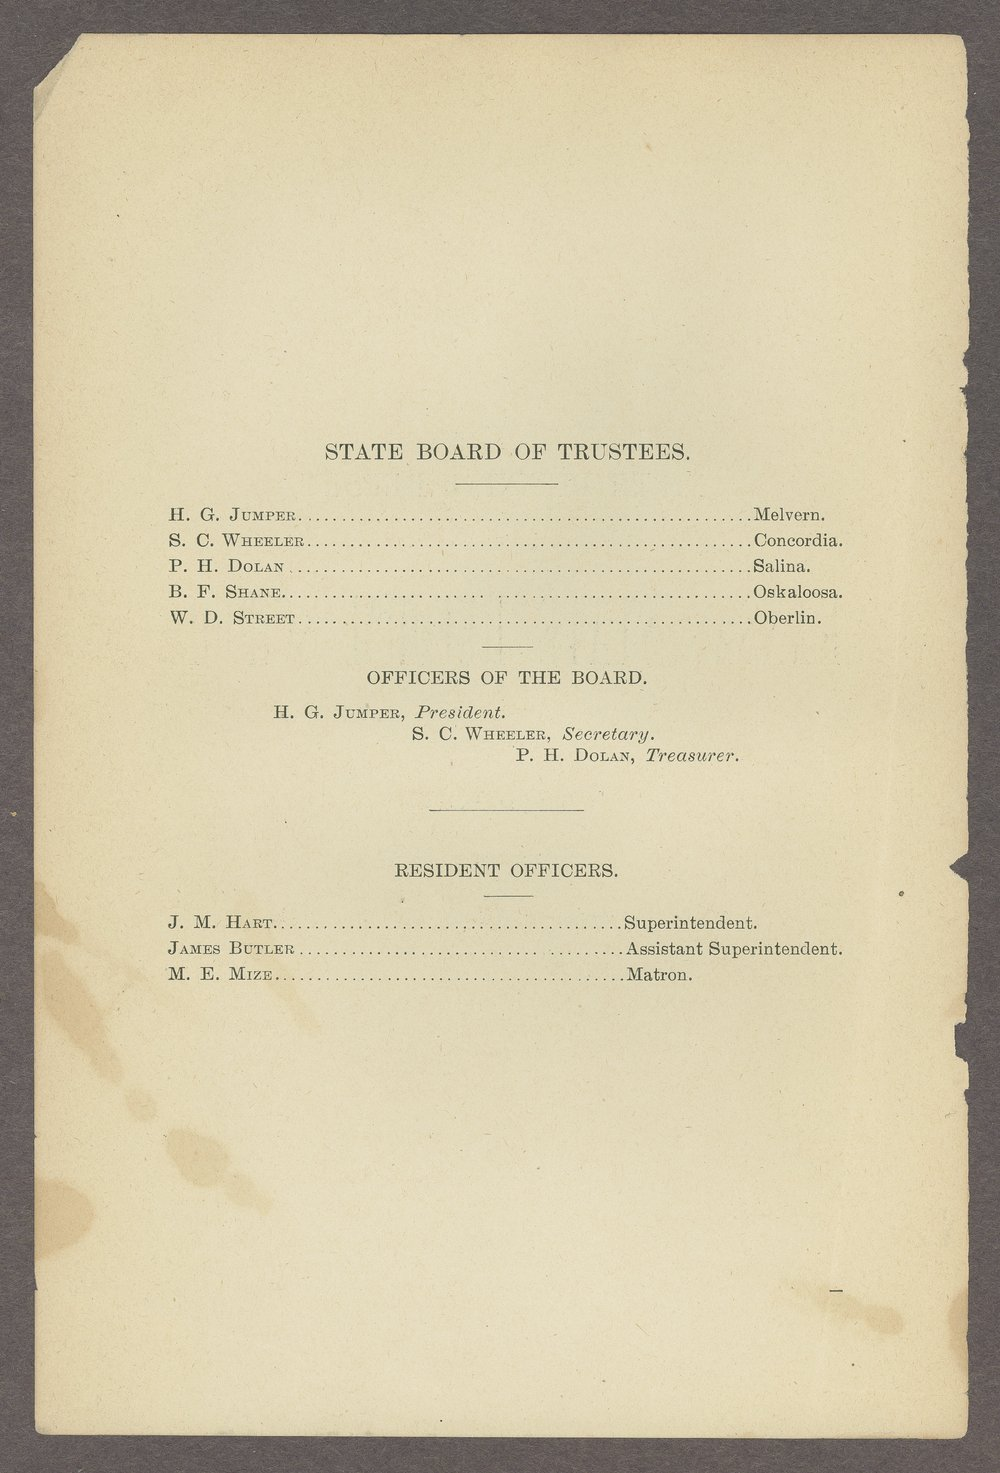 Biennial report of the State Reform School,1898 - 2